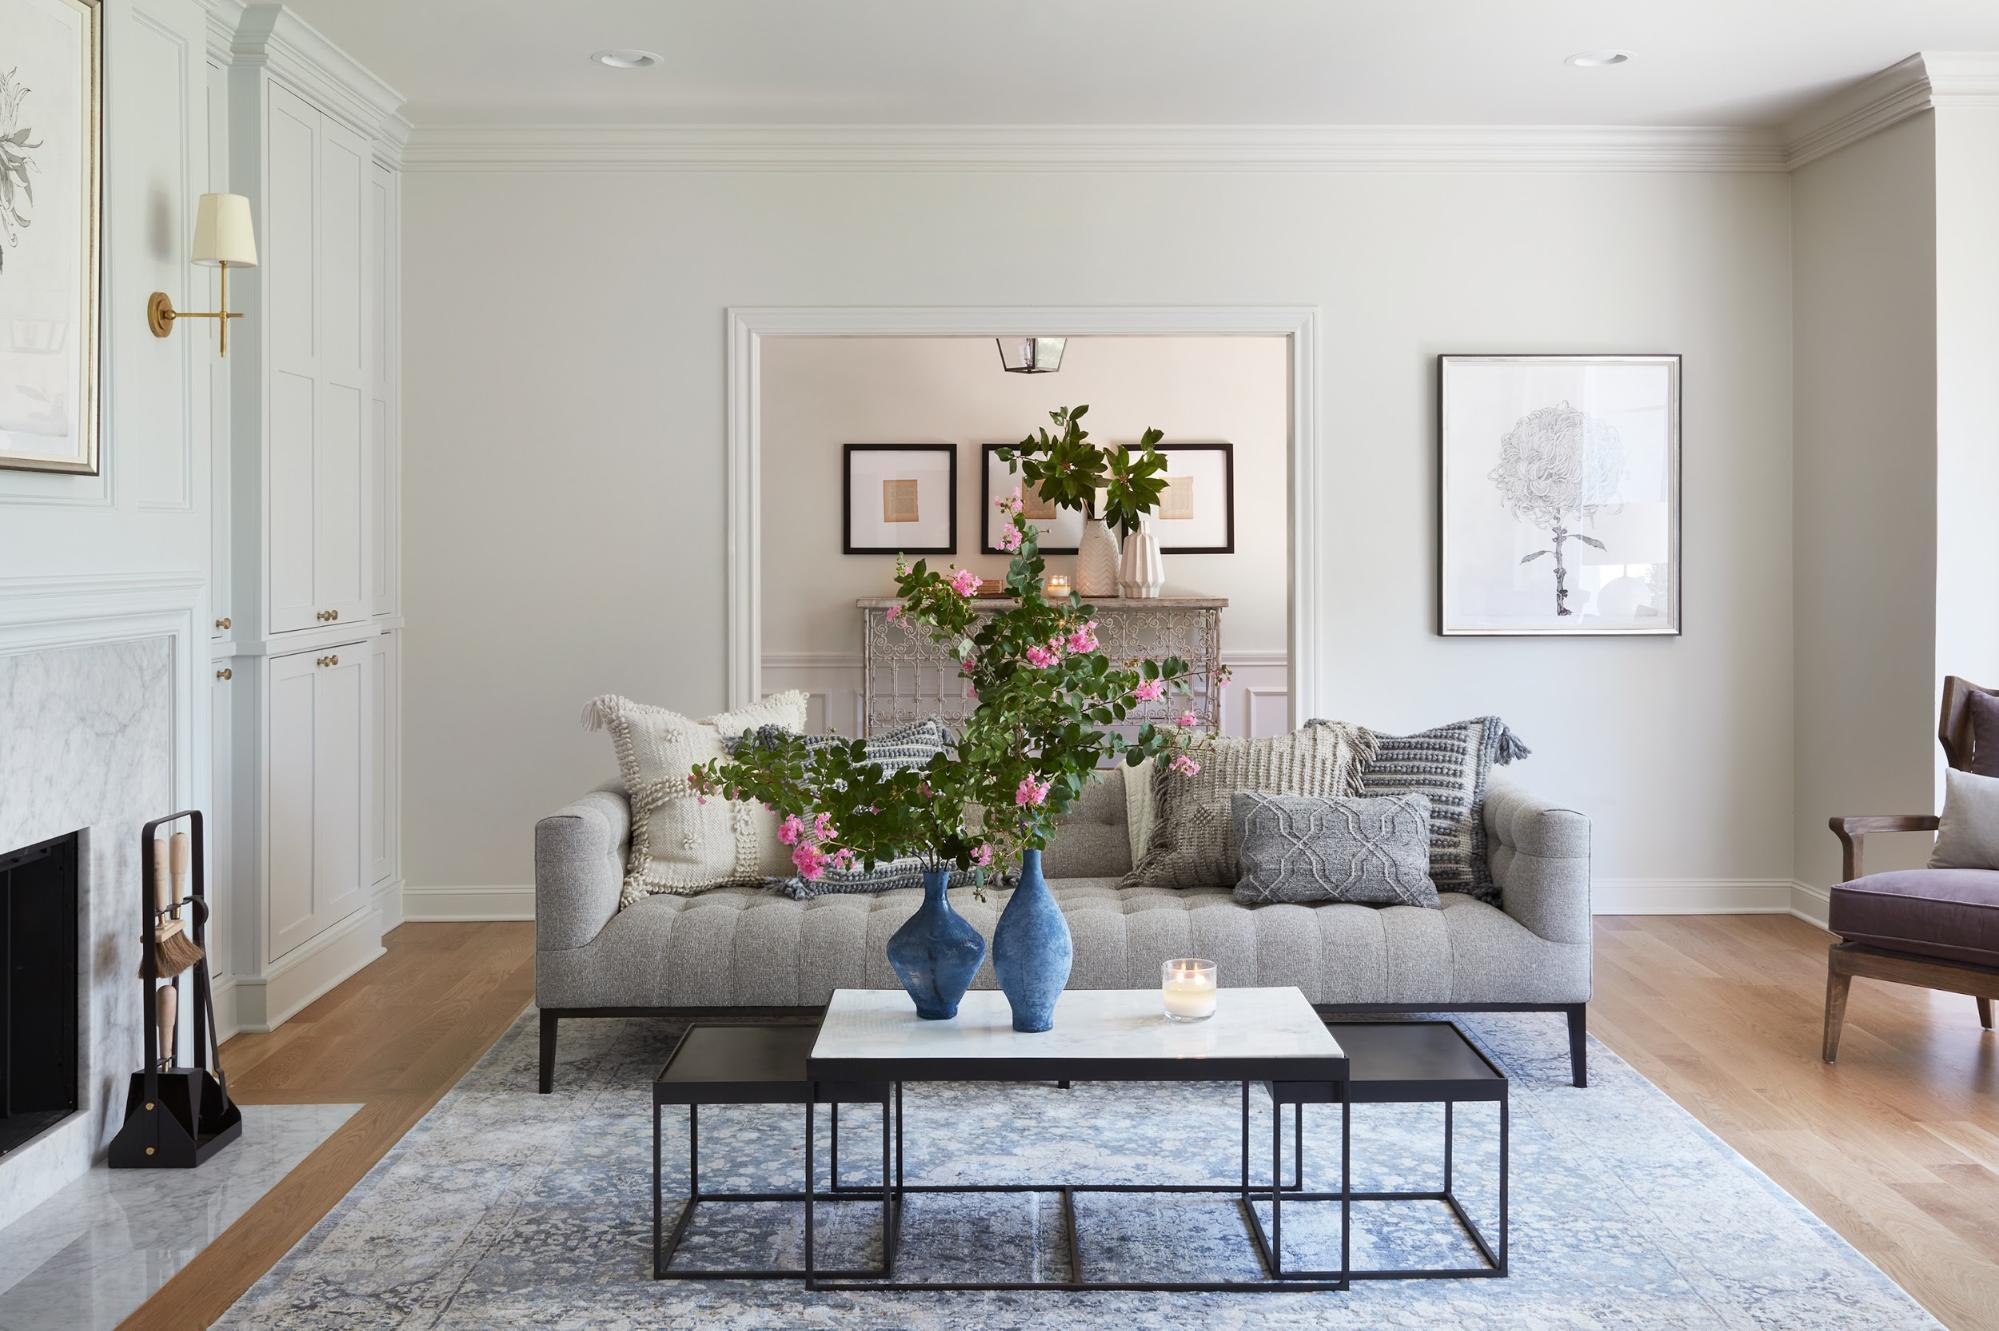 Fixer Upper Club House Living Room Decor: Get the Look! - Hello Lovely